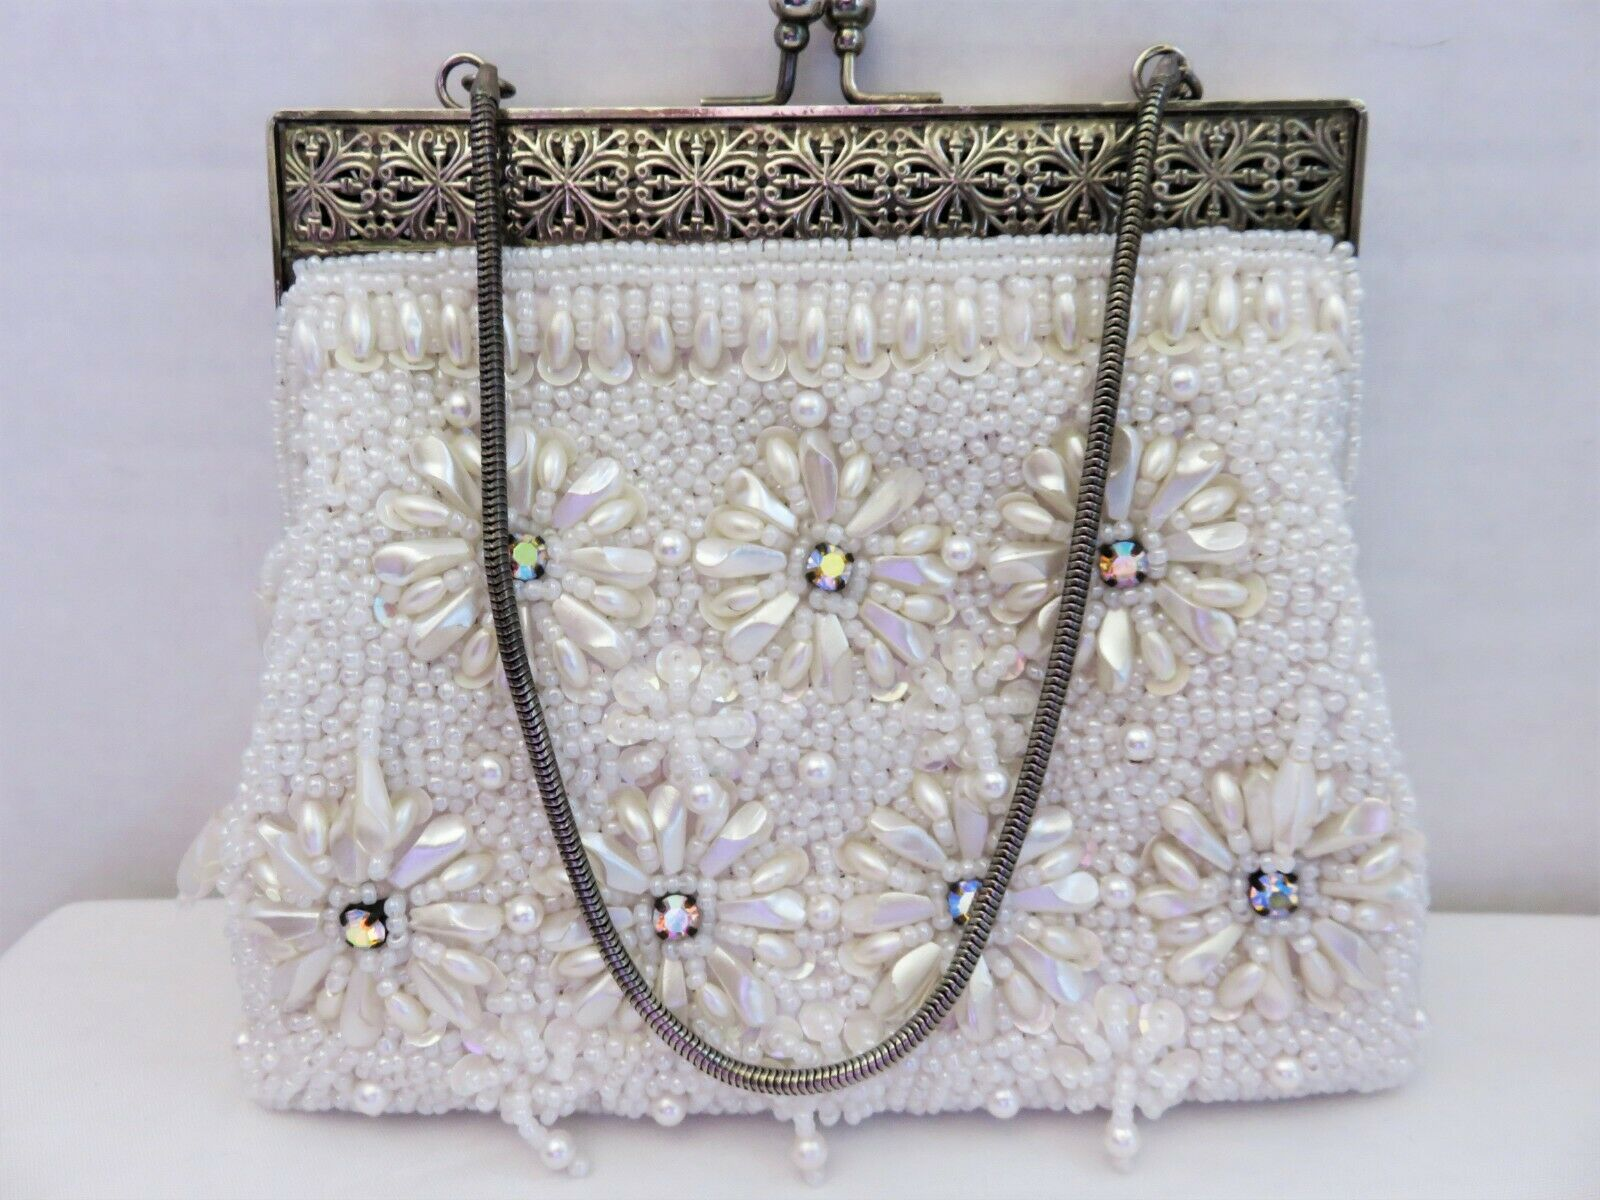 Wedding Kiss Clasp Hand Beaded 1950/'s Hand Made Purse Gold Tone Hardware Elegant White Glass Bead Evening Bag Clam Shell Shaped Prom